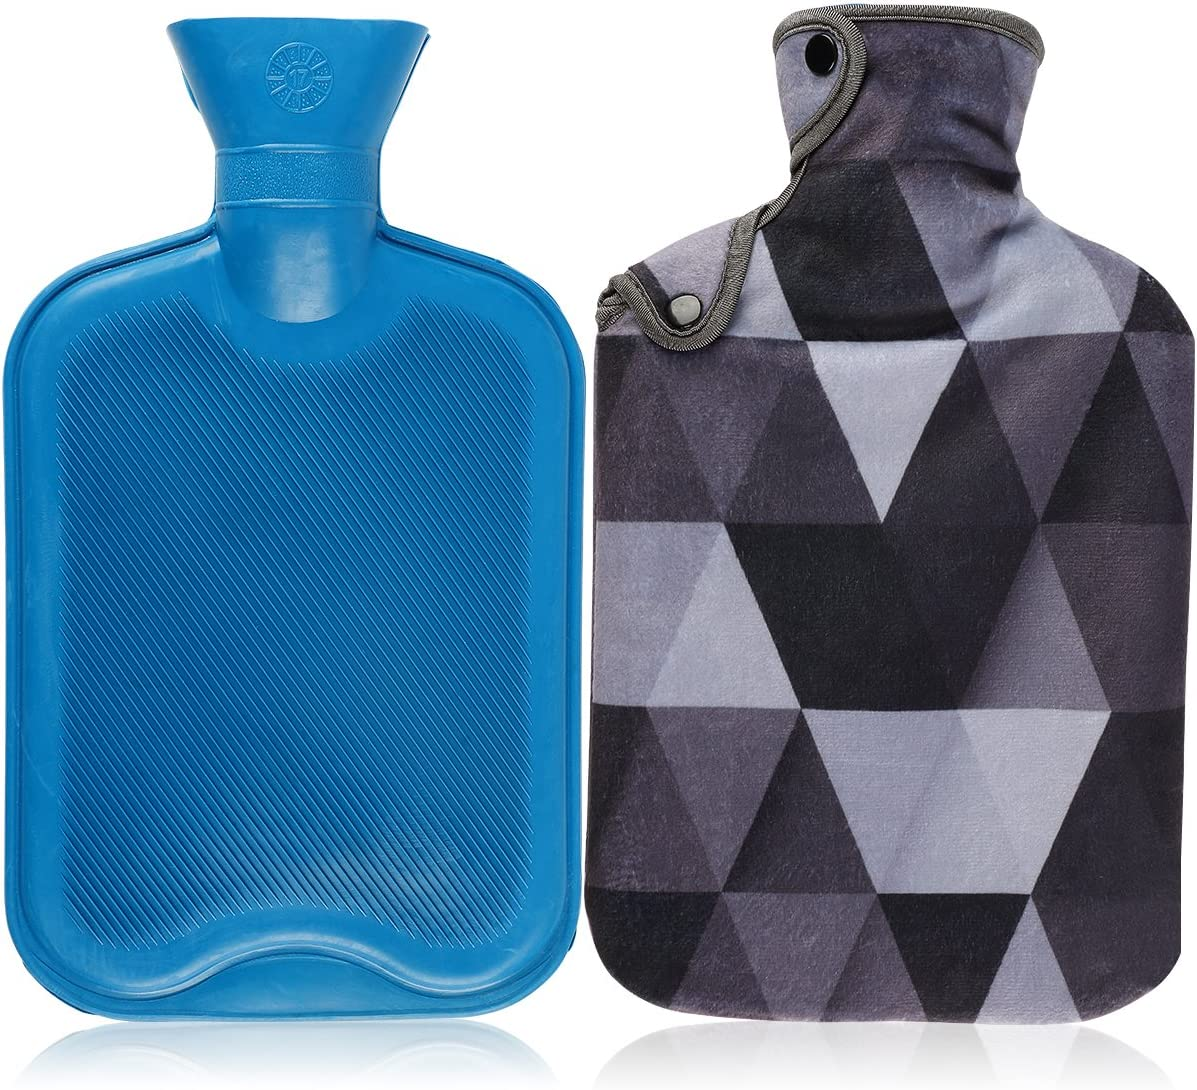 Hot Water Bottle & Cover Set,AUPET 2 Liters Premium Classic Rubber Hot Water Bottle with Super Luxurious Cozy Soft Flannel Cover Set, Great for Pain Relief, Hot and Cold Therapy (Cool Gray Lattices)